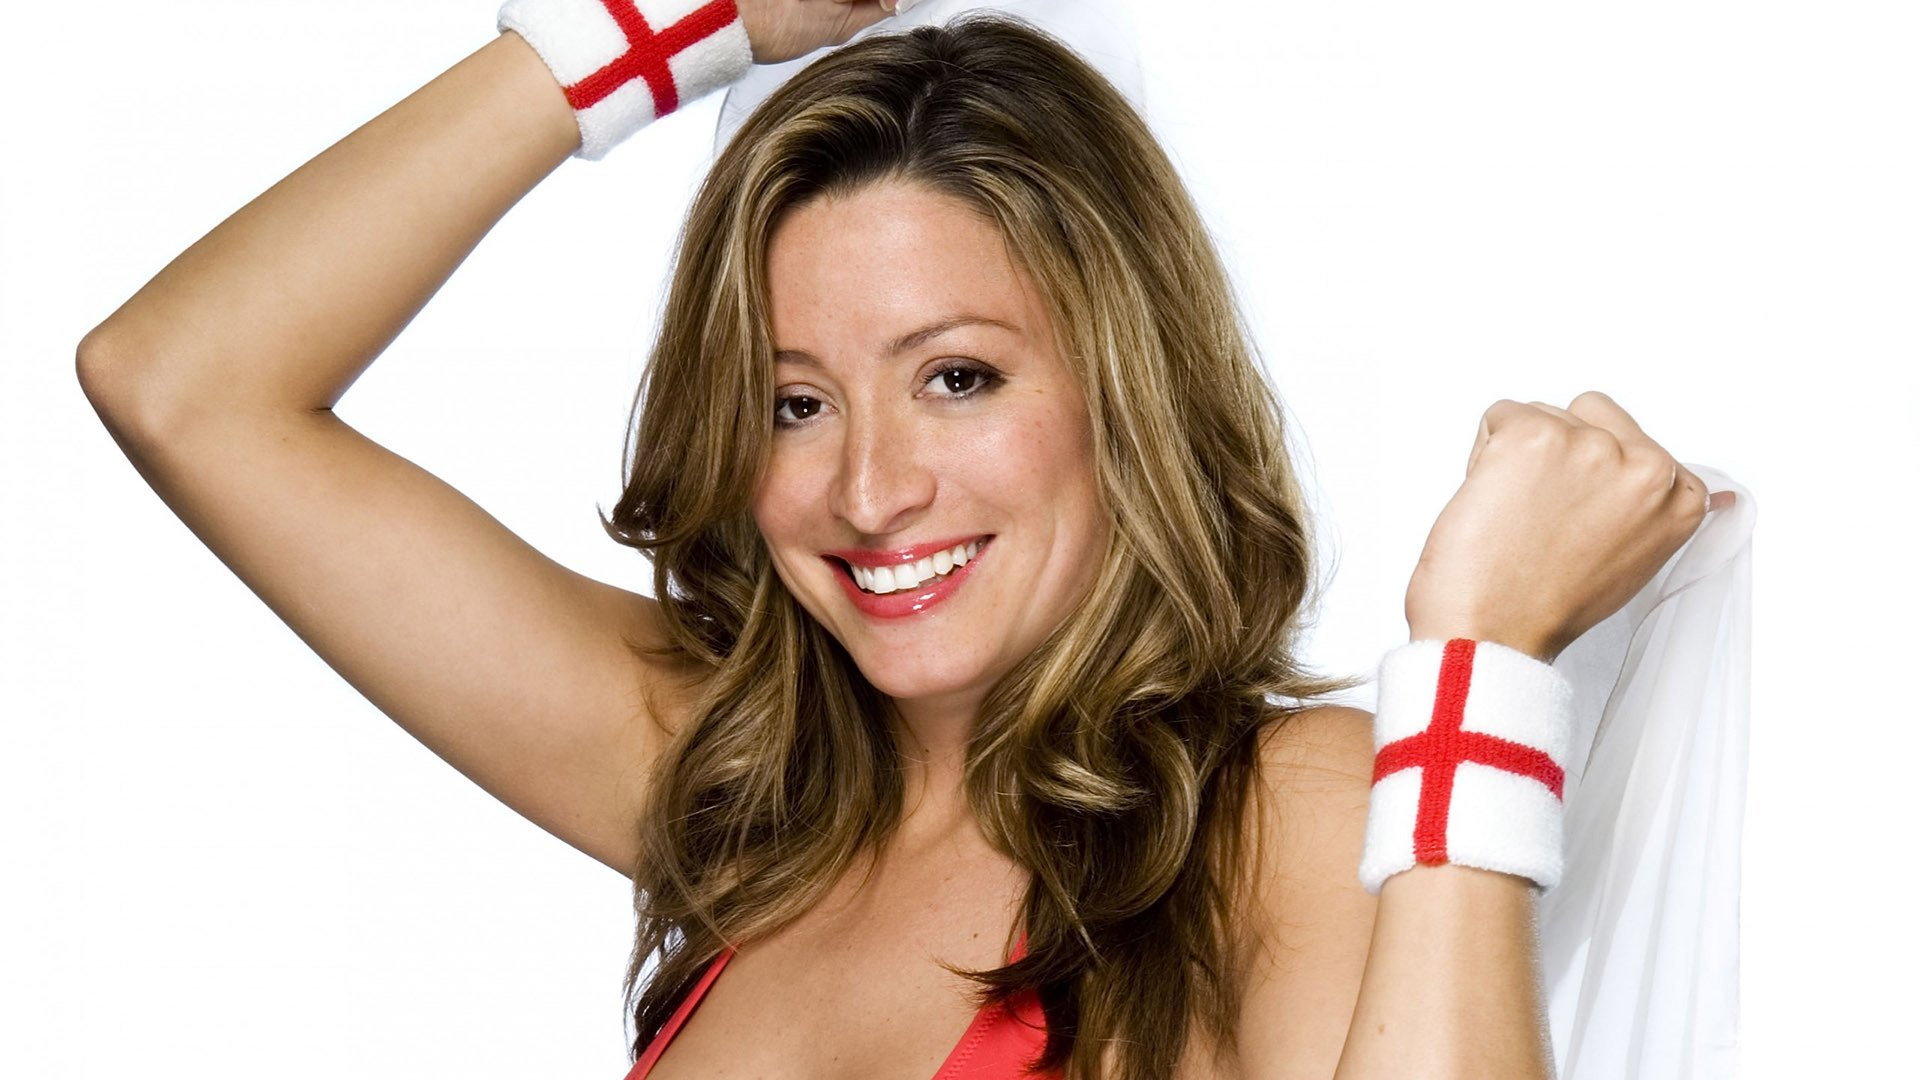 Wolfenstein Hd Wallpapers Rebecca Loos Wallpapers Pictures Images